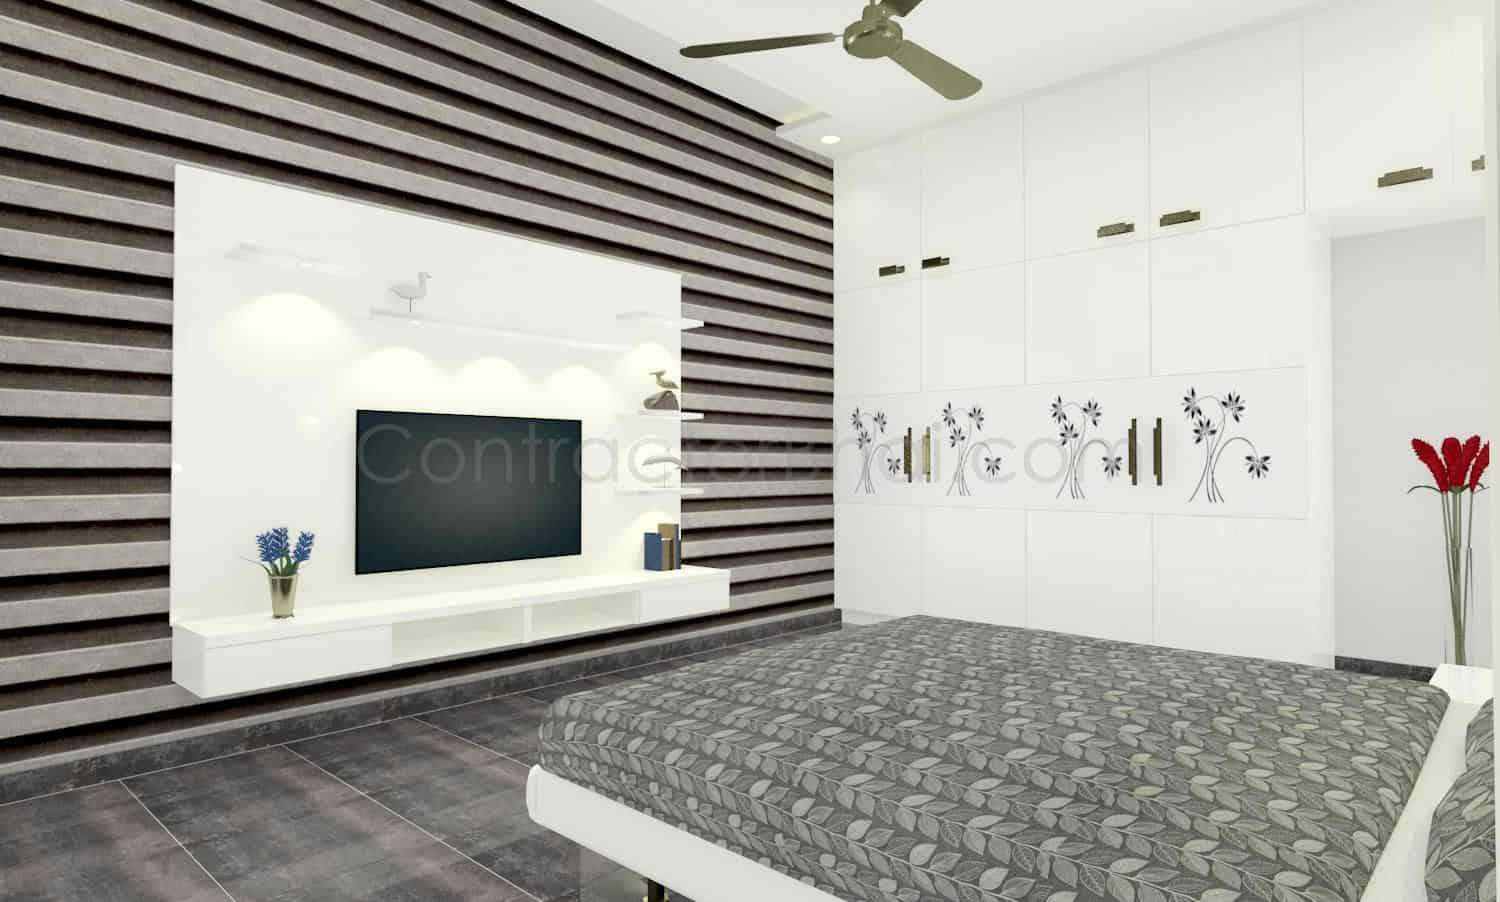 contractorbhai three d design service for home owners - Home Interior Design Services